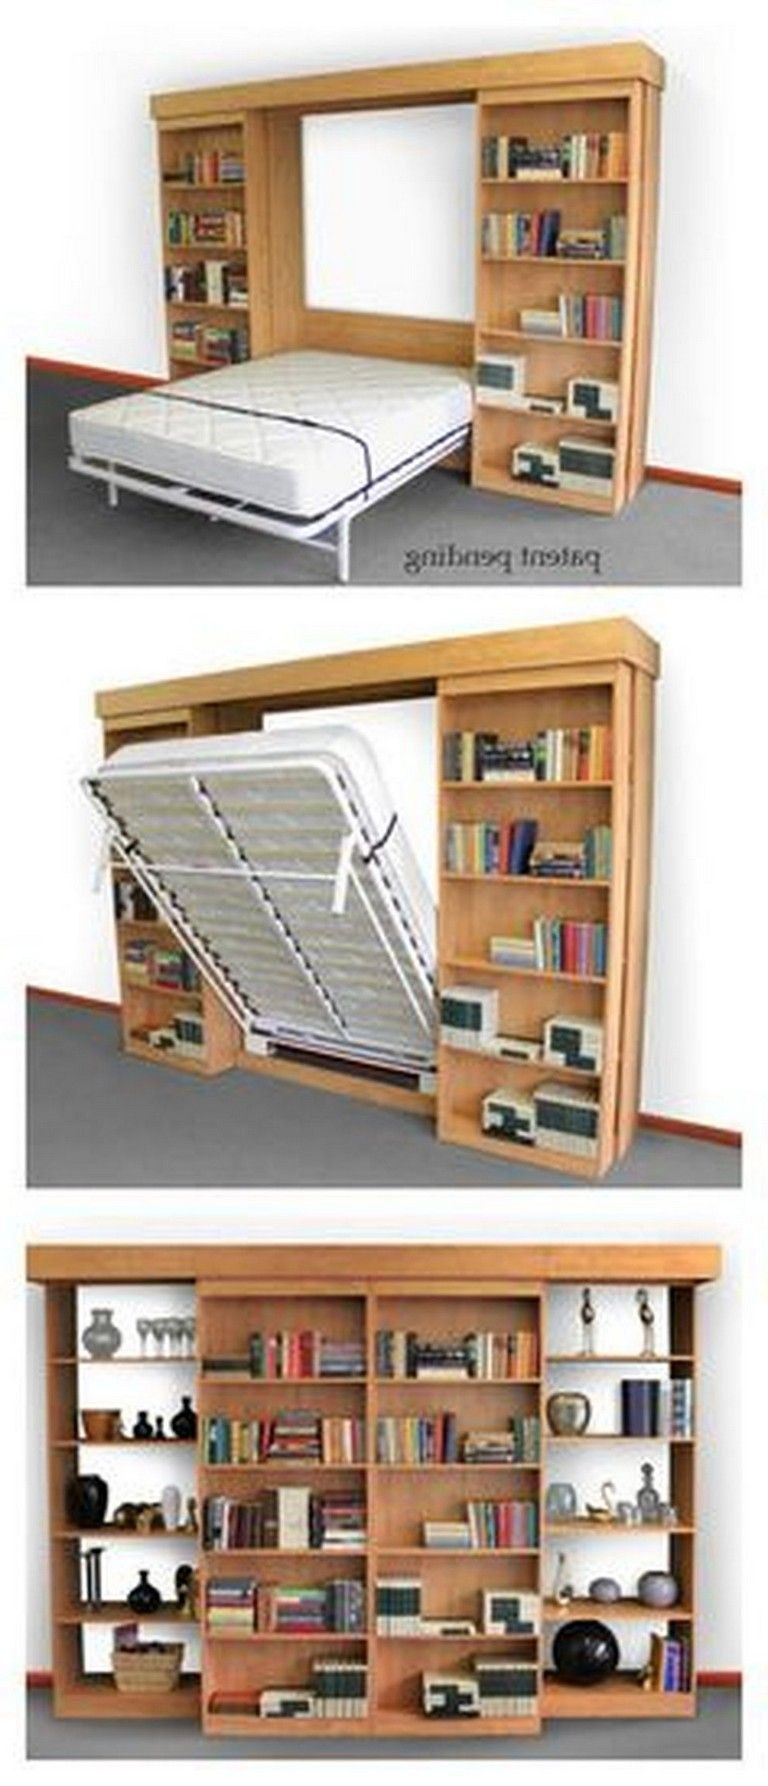 55 Intelgent Creative Folding Bed Ideas For Home Space Saving